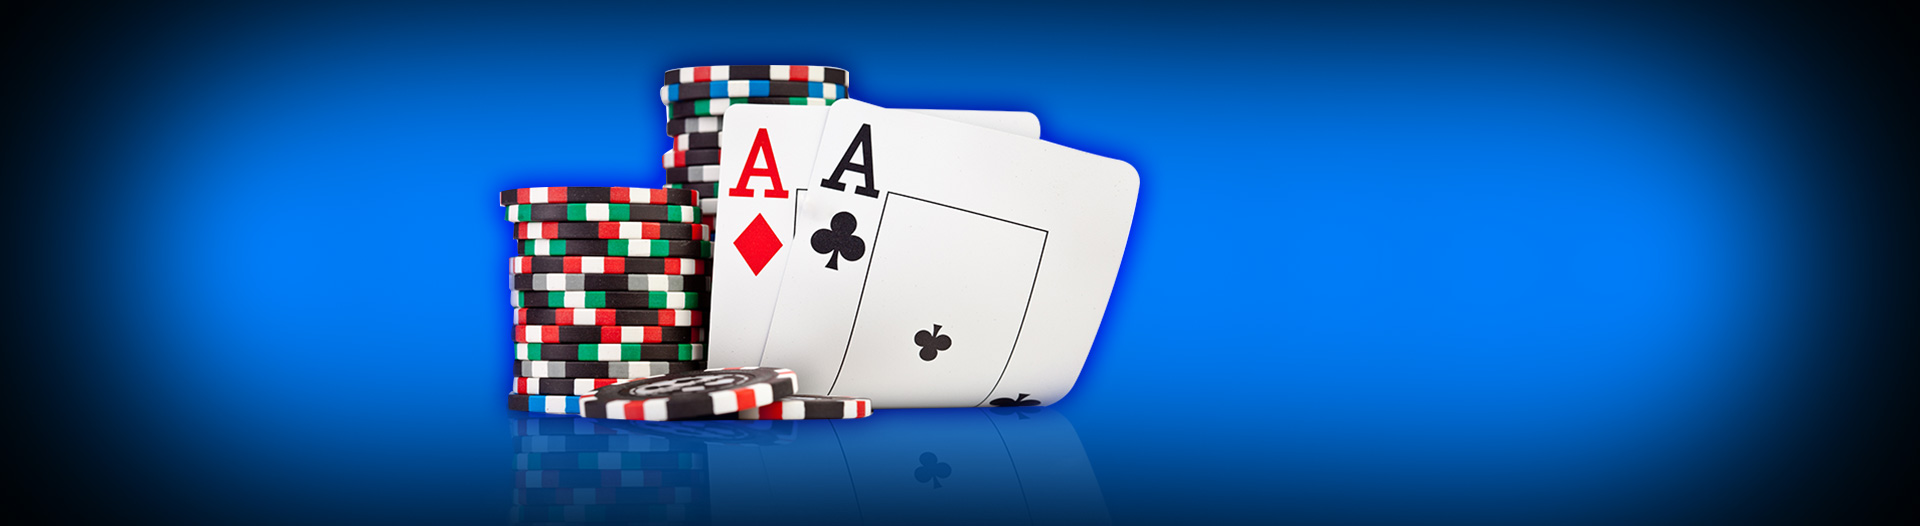 88 poker download